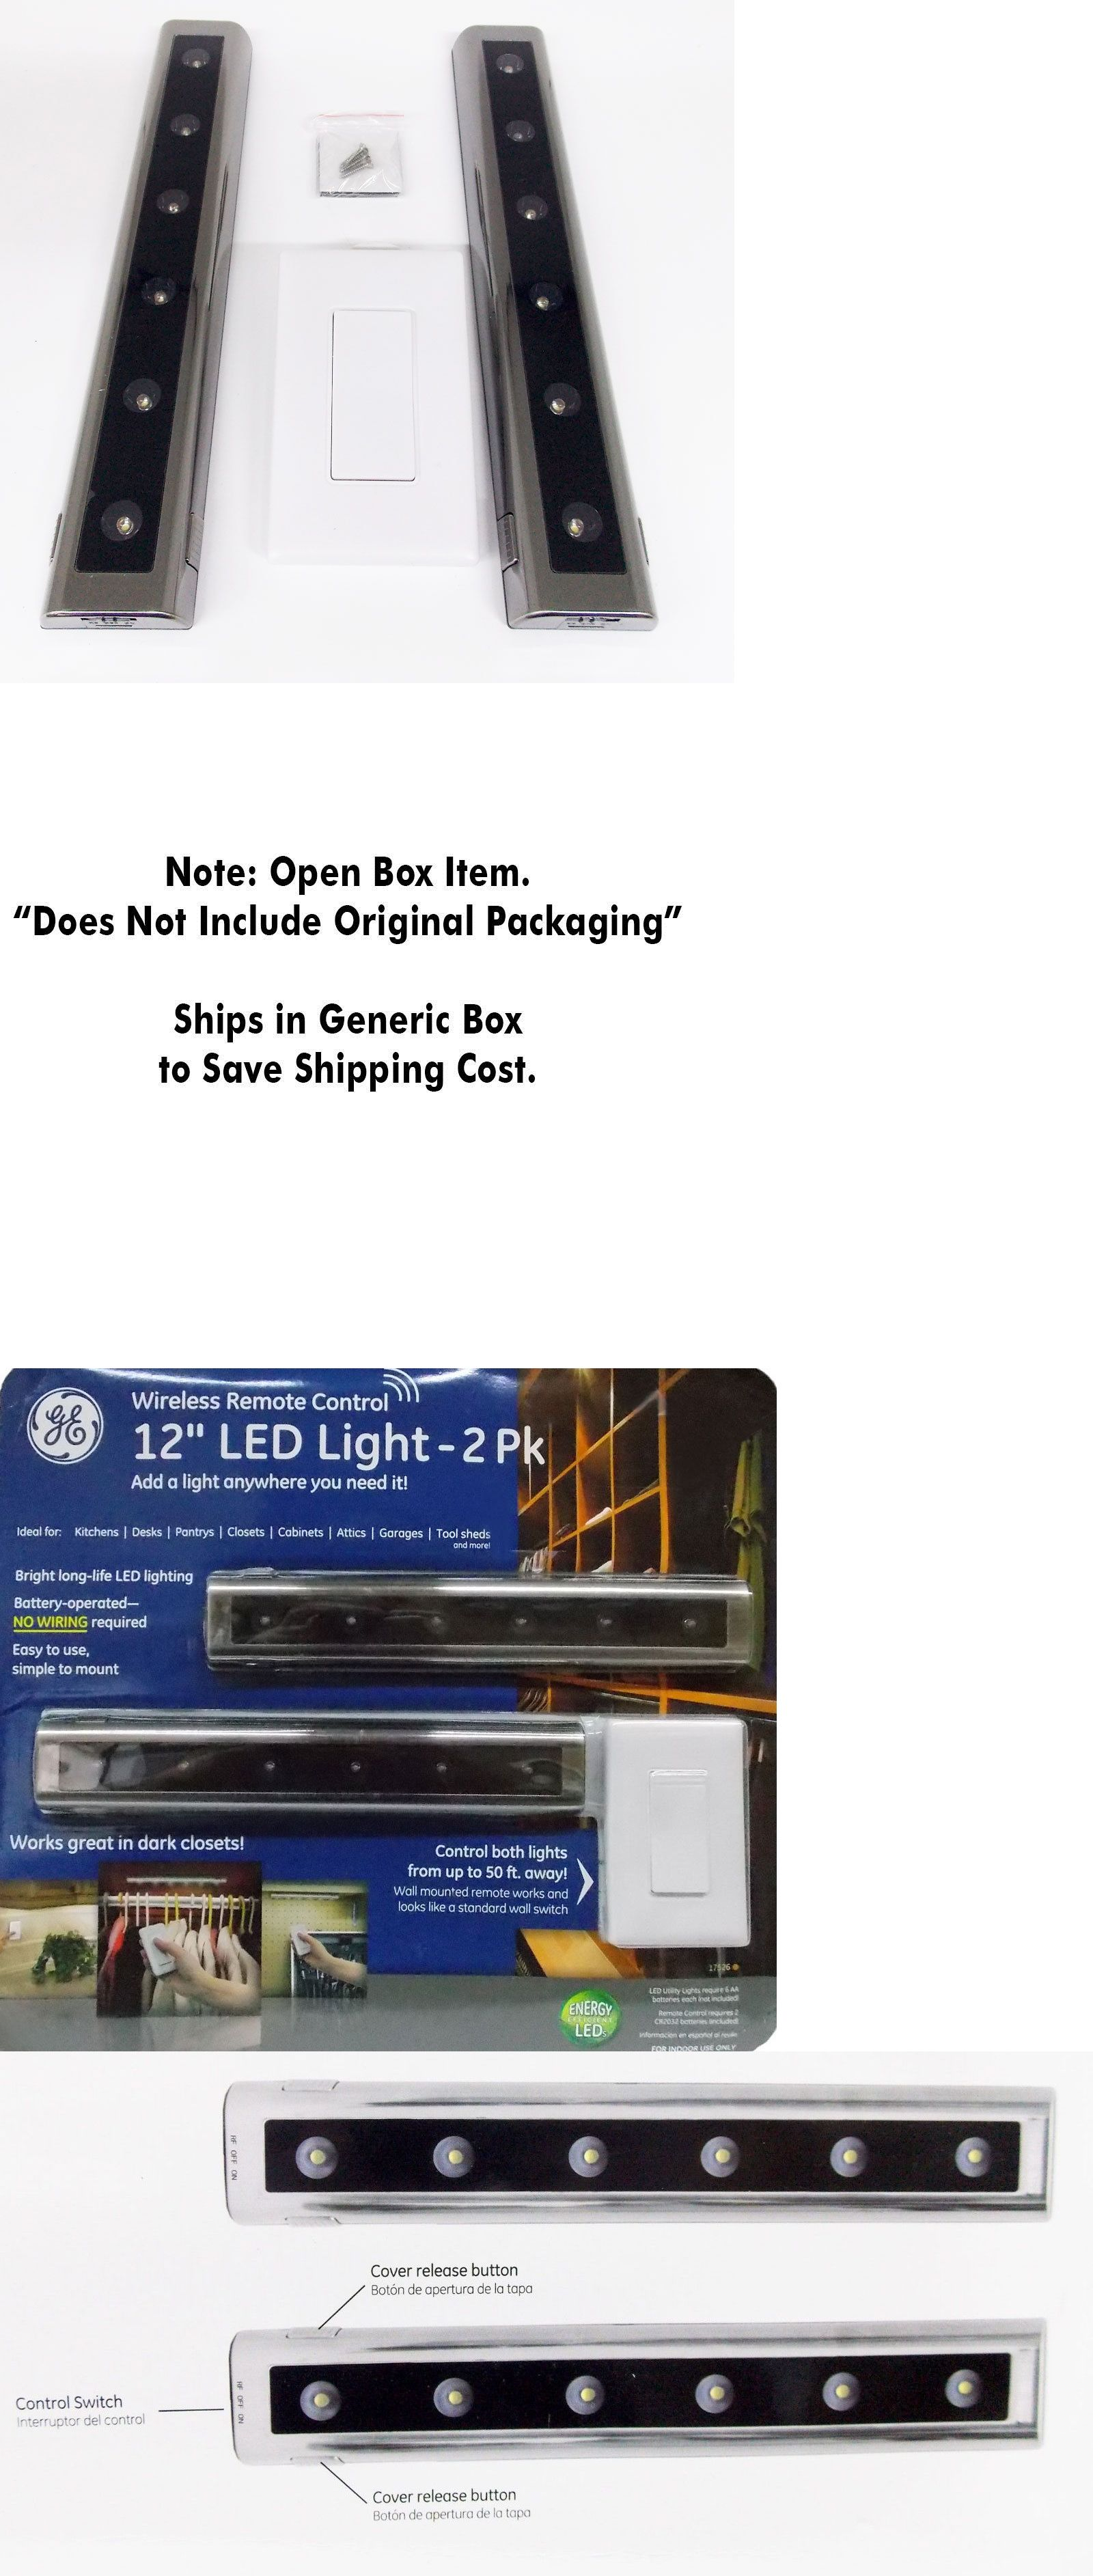 Other Lighting And Ceiling Fans 3201 Ge Wireless 2 Pack 12 Led Light Bars Battery Ed Wall Mount Remote Control It Now Only 39 96 On Ebay